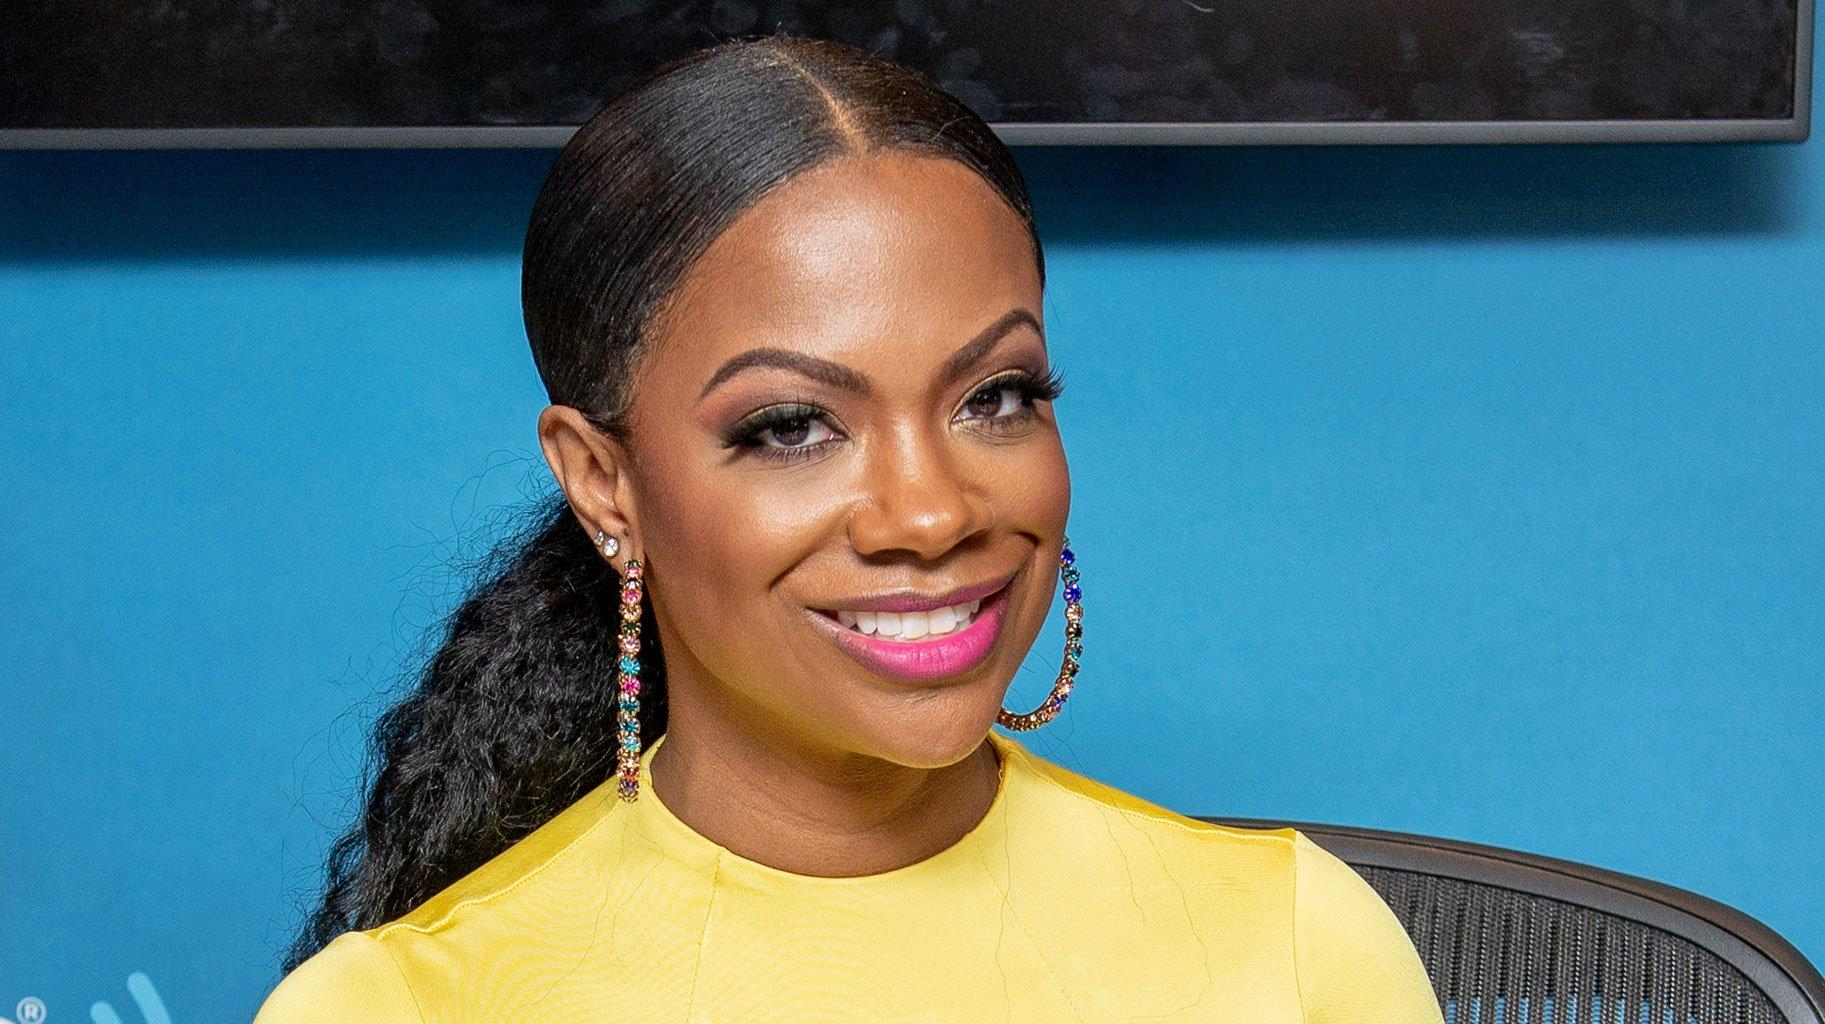 Kandi Burruss Advertises A Weight Loss Product And Tells Her Fans That She's Not Playing With Fake Diets